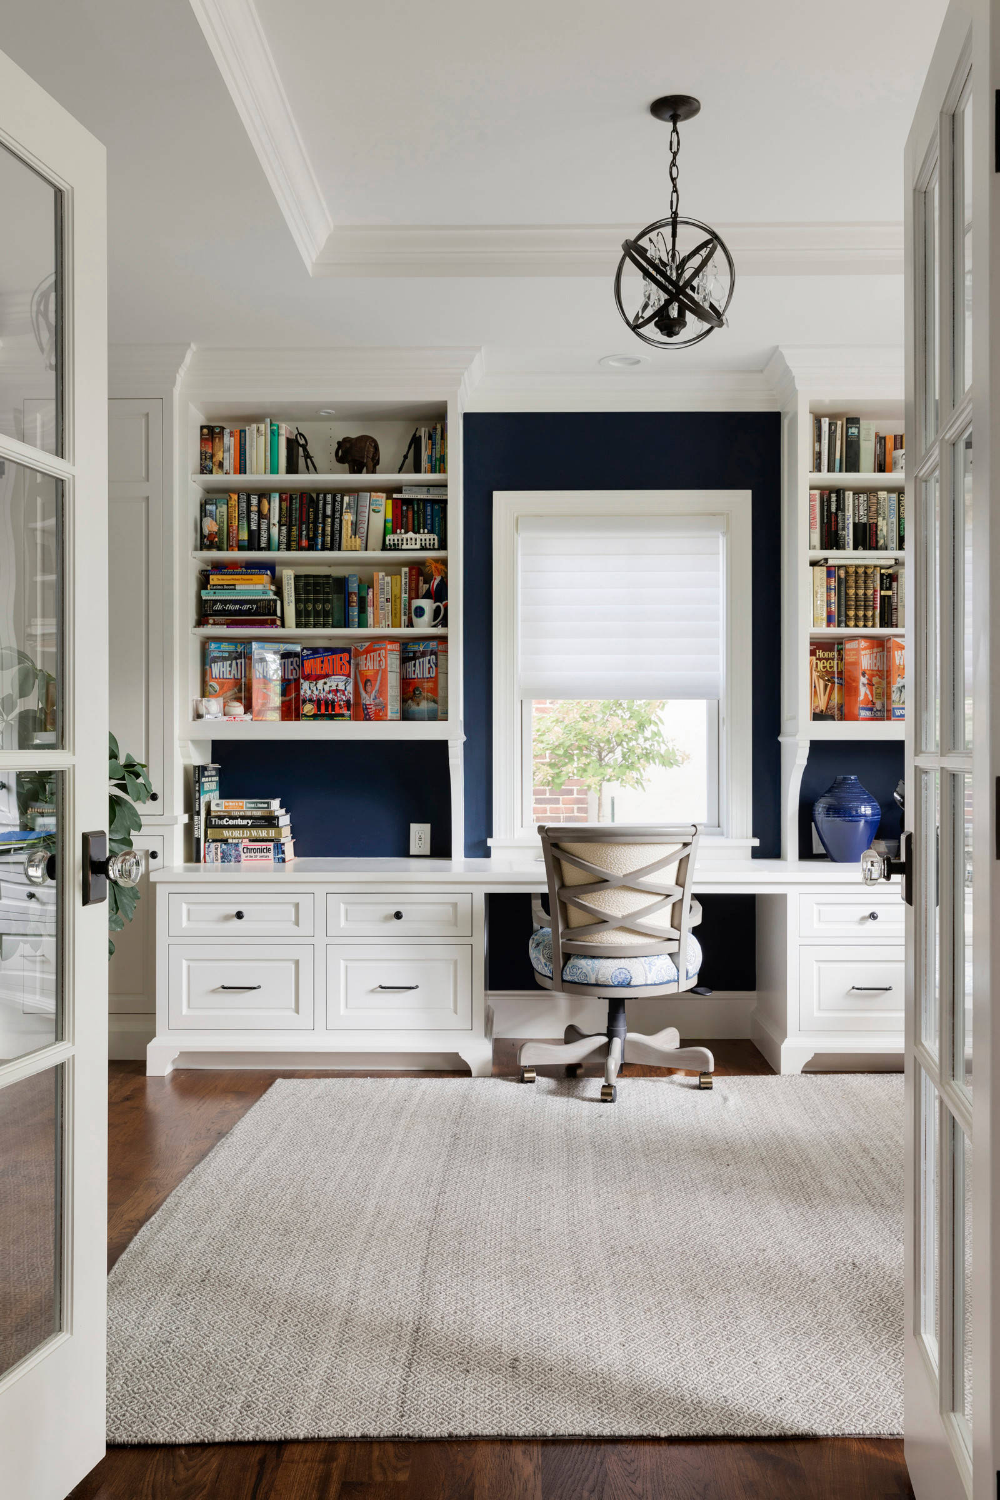 Ikea Home Office Library Ideas: Pin By Akua Lee On Kitchen In 2020